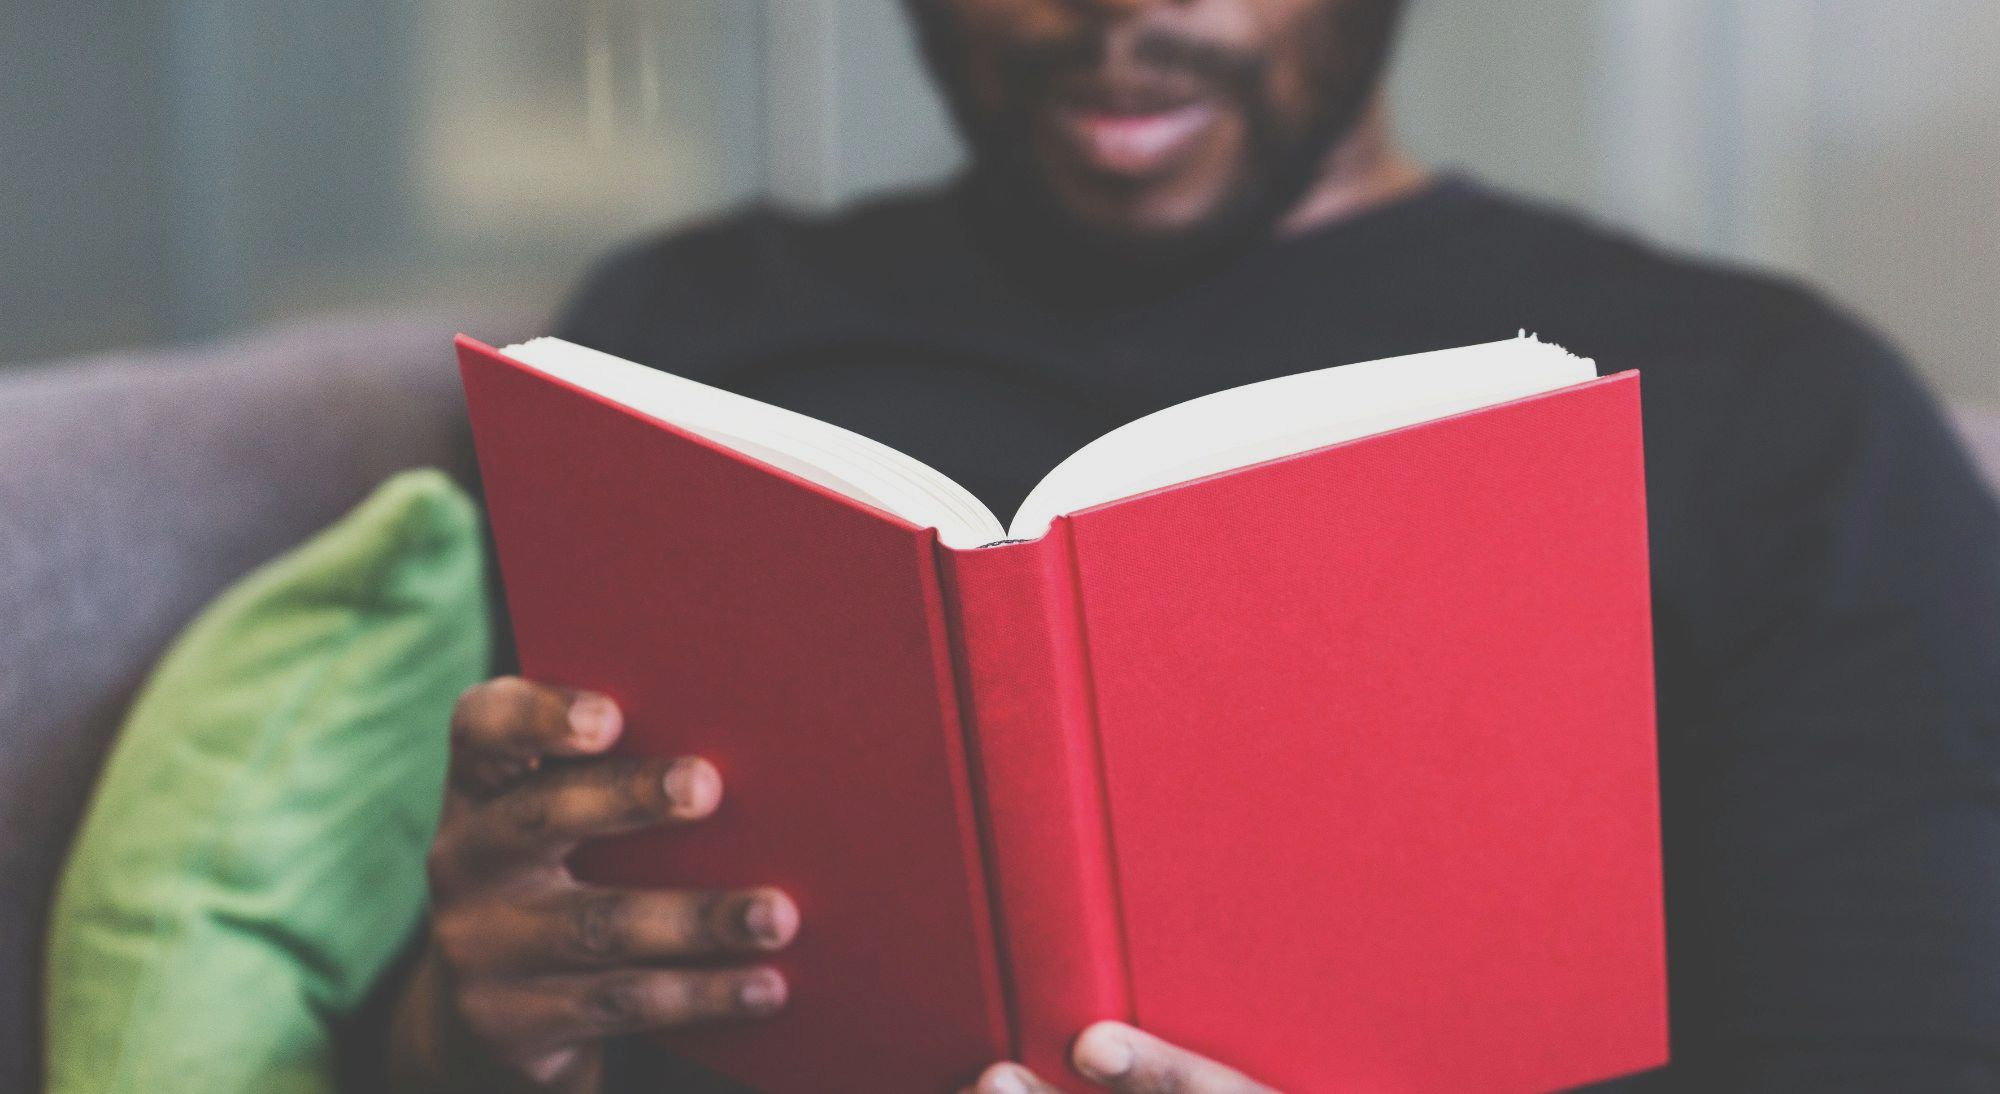 What? - A man, out of focus,  reading a red book